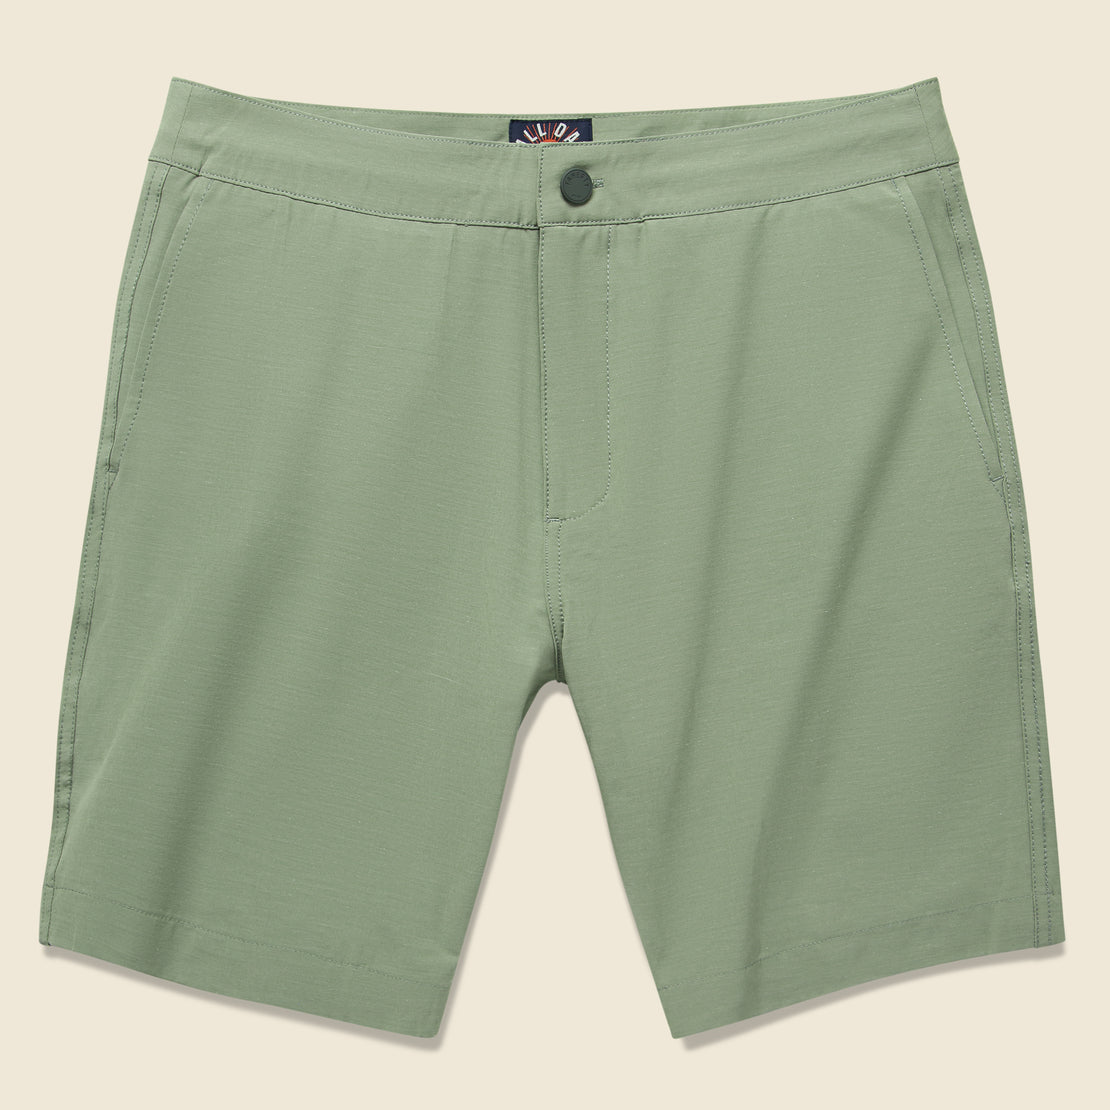 Faherty All Day Short - Olive